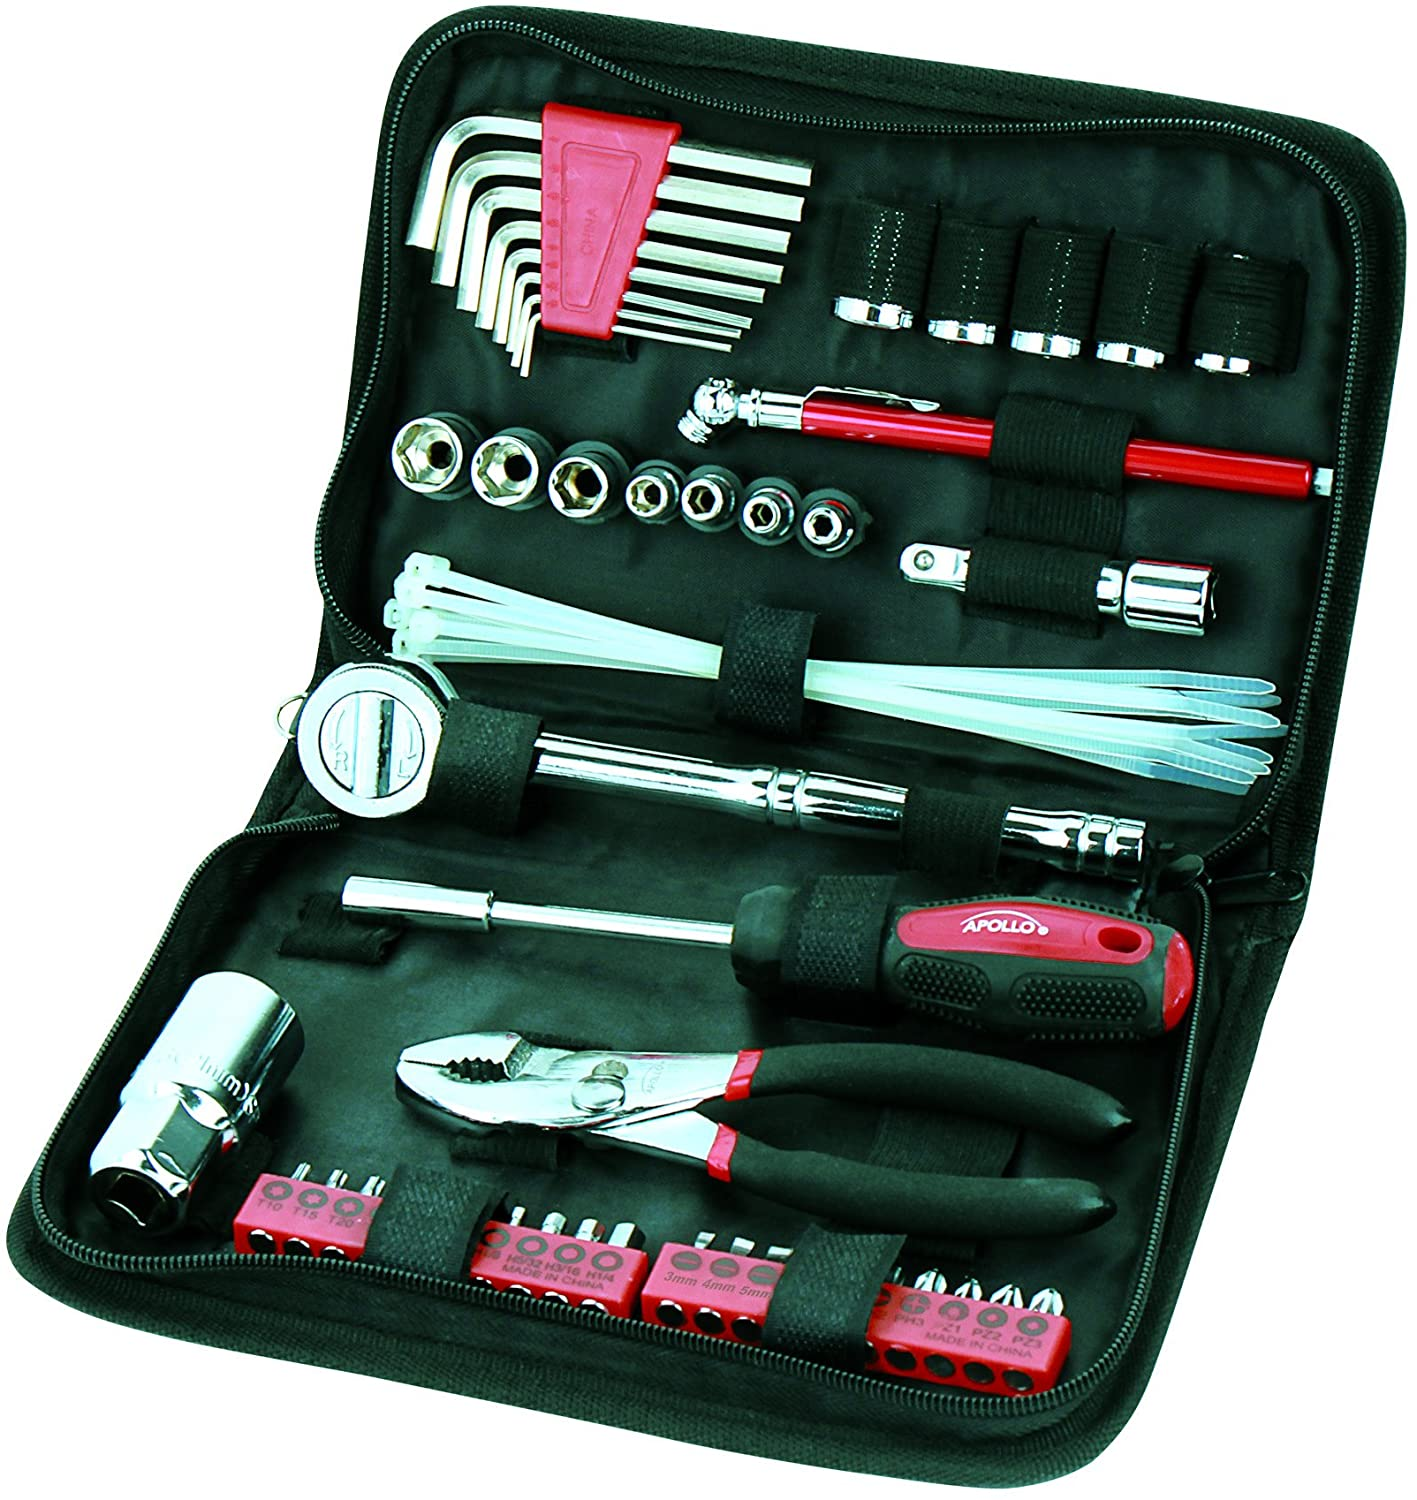 APOLLO TOOLS 56 Piece Compact Metric Auto Tool Set in Zippered Case, Small Mechanic Tool Set for Car Emergency, Motorcycle Repair on the Road, and Travel Tool Needs - DT9775 , Pink